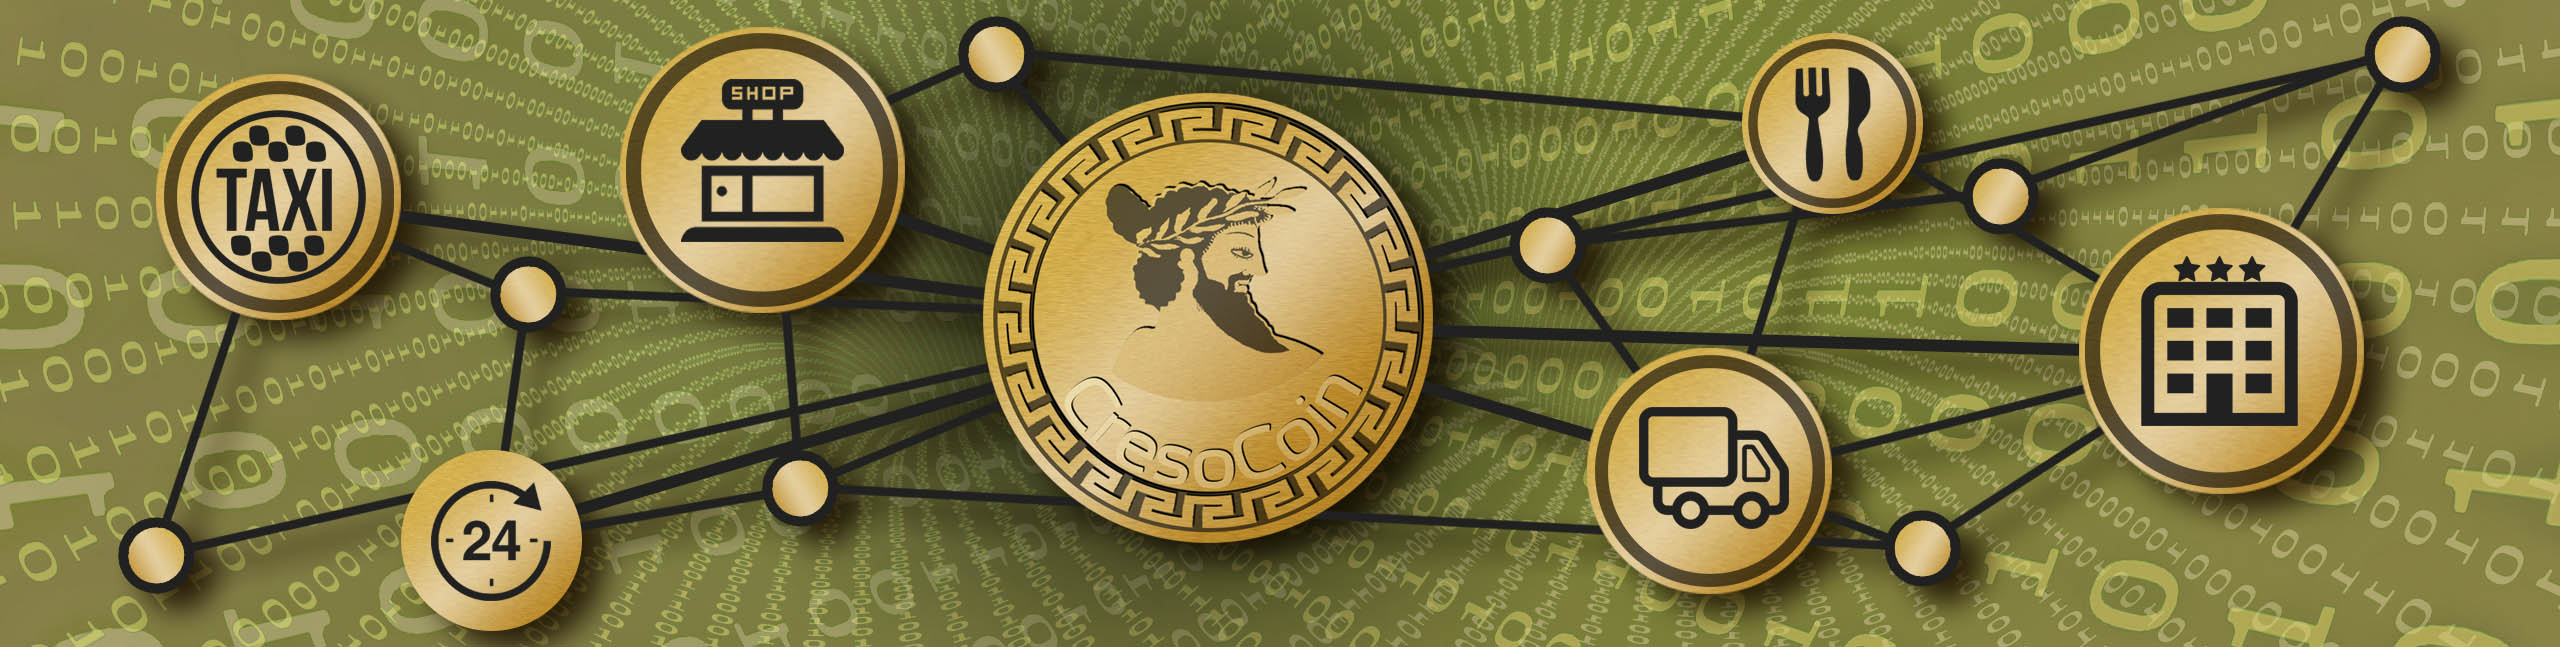 Cresocoin title image